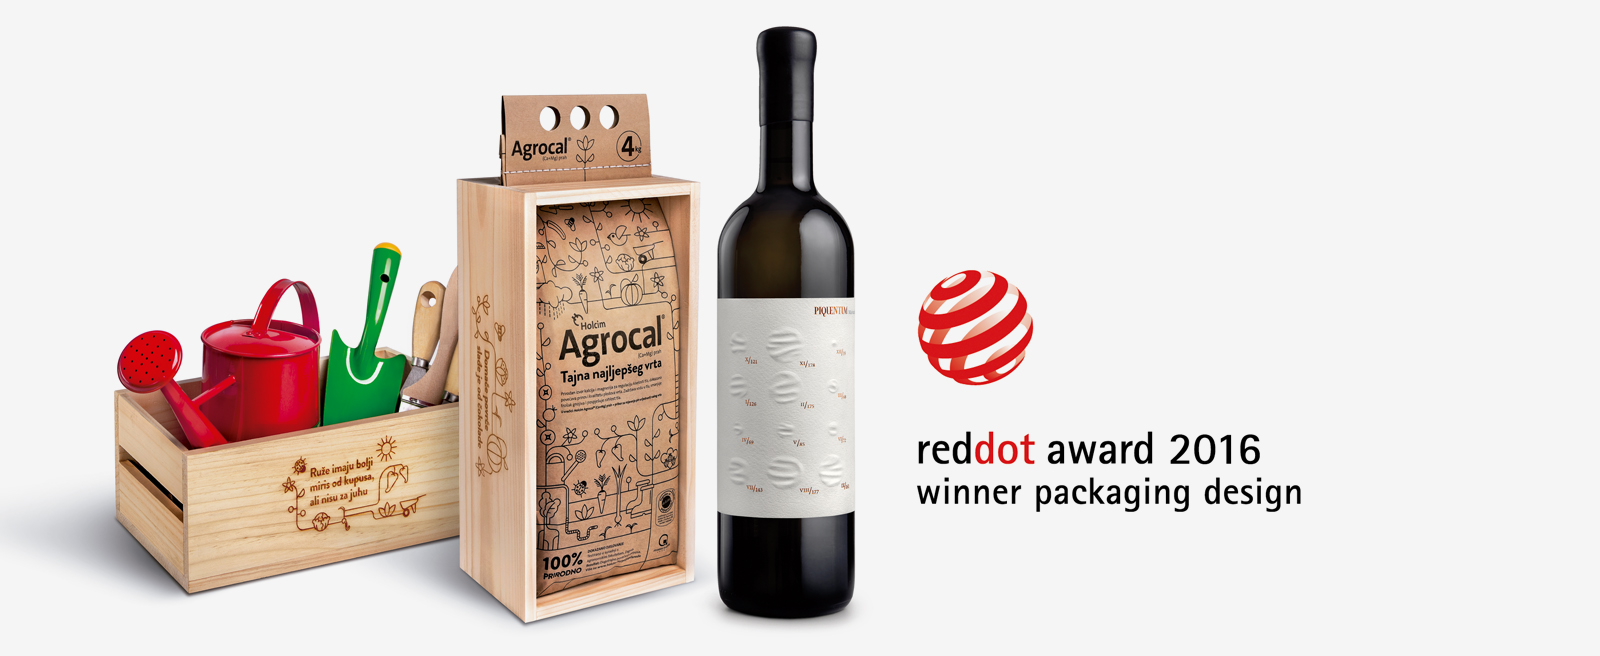 In 2016 two more Red Dot Awards for design